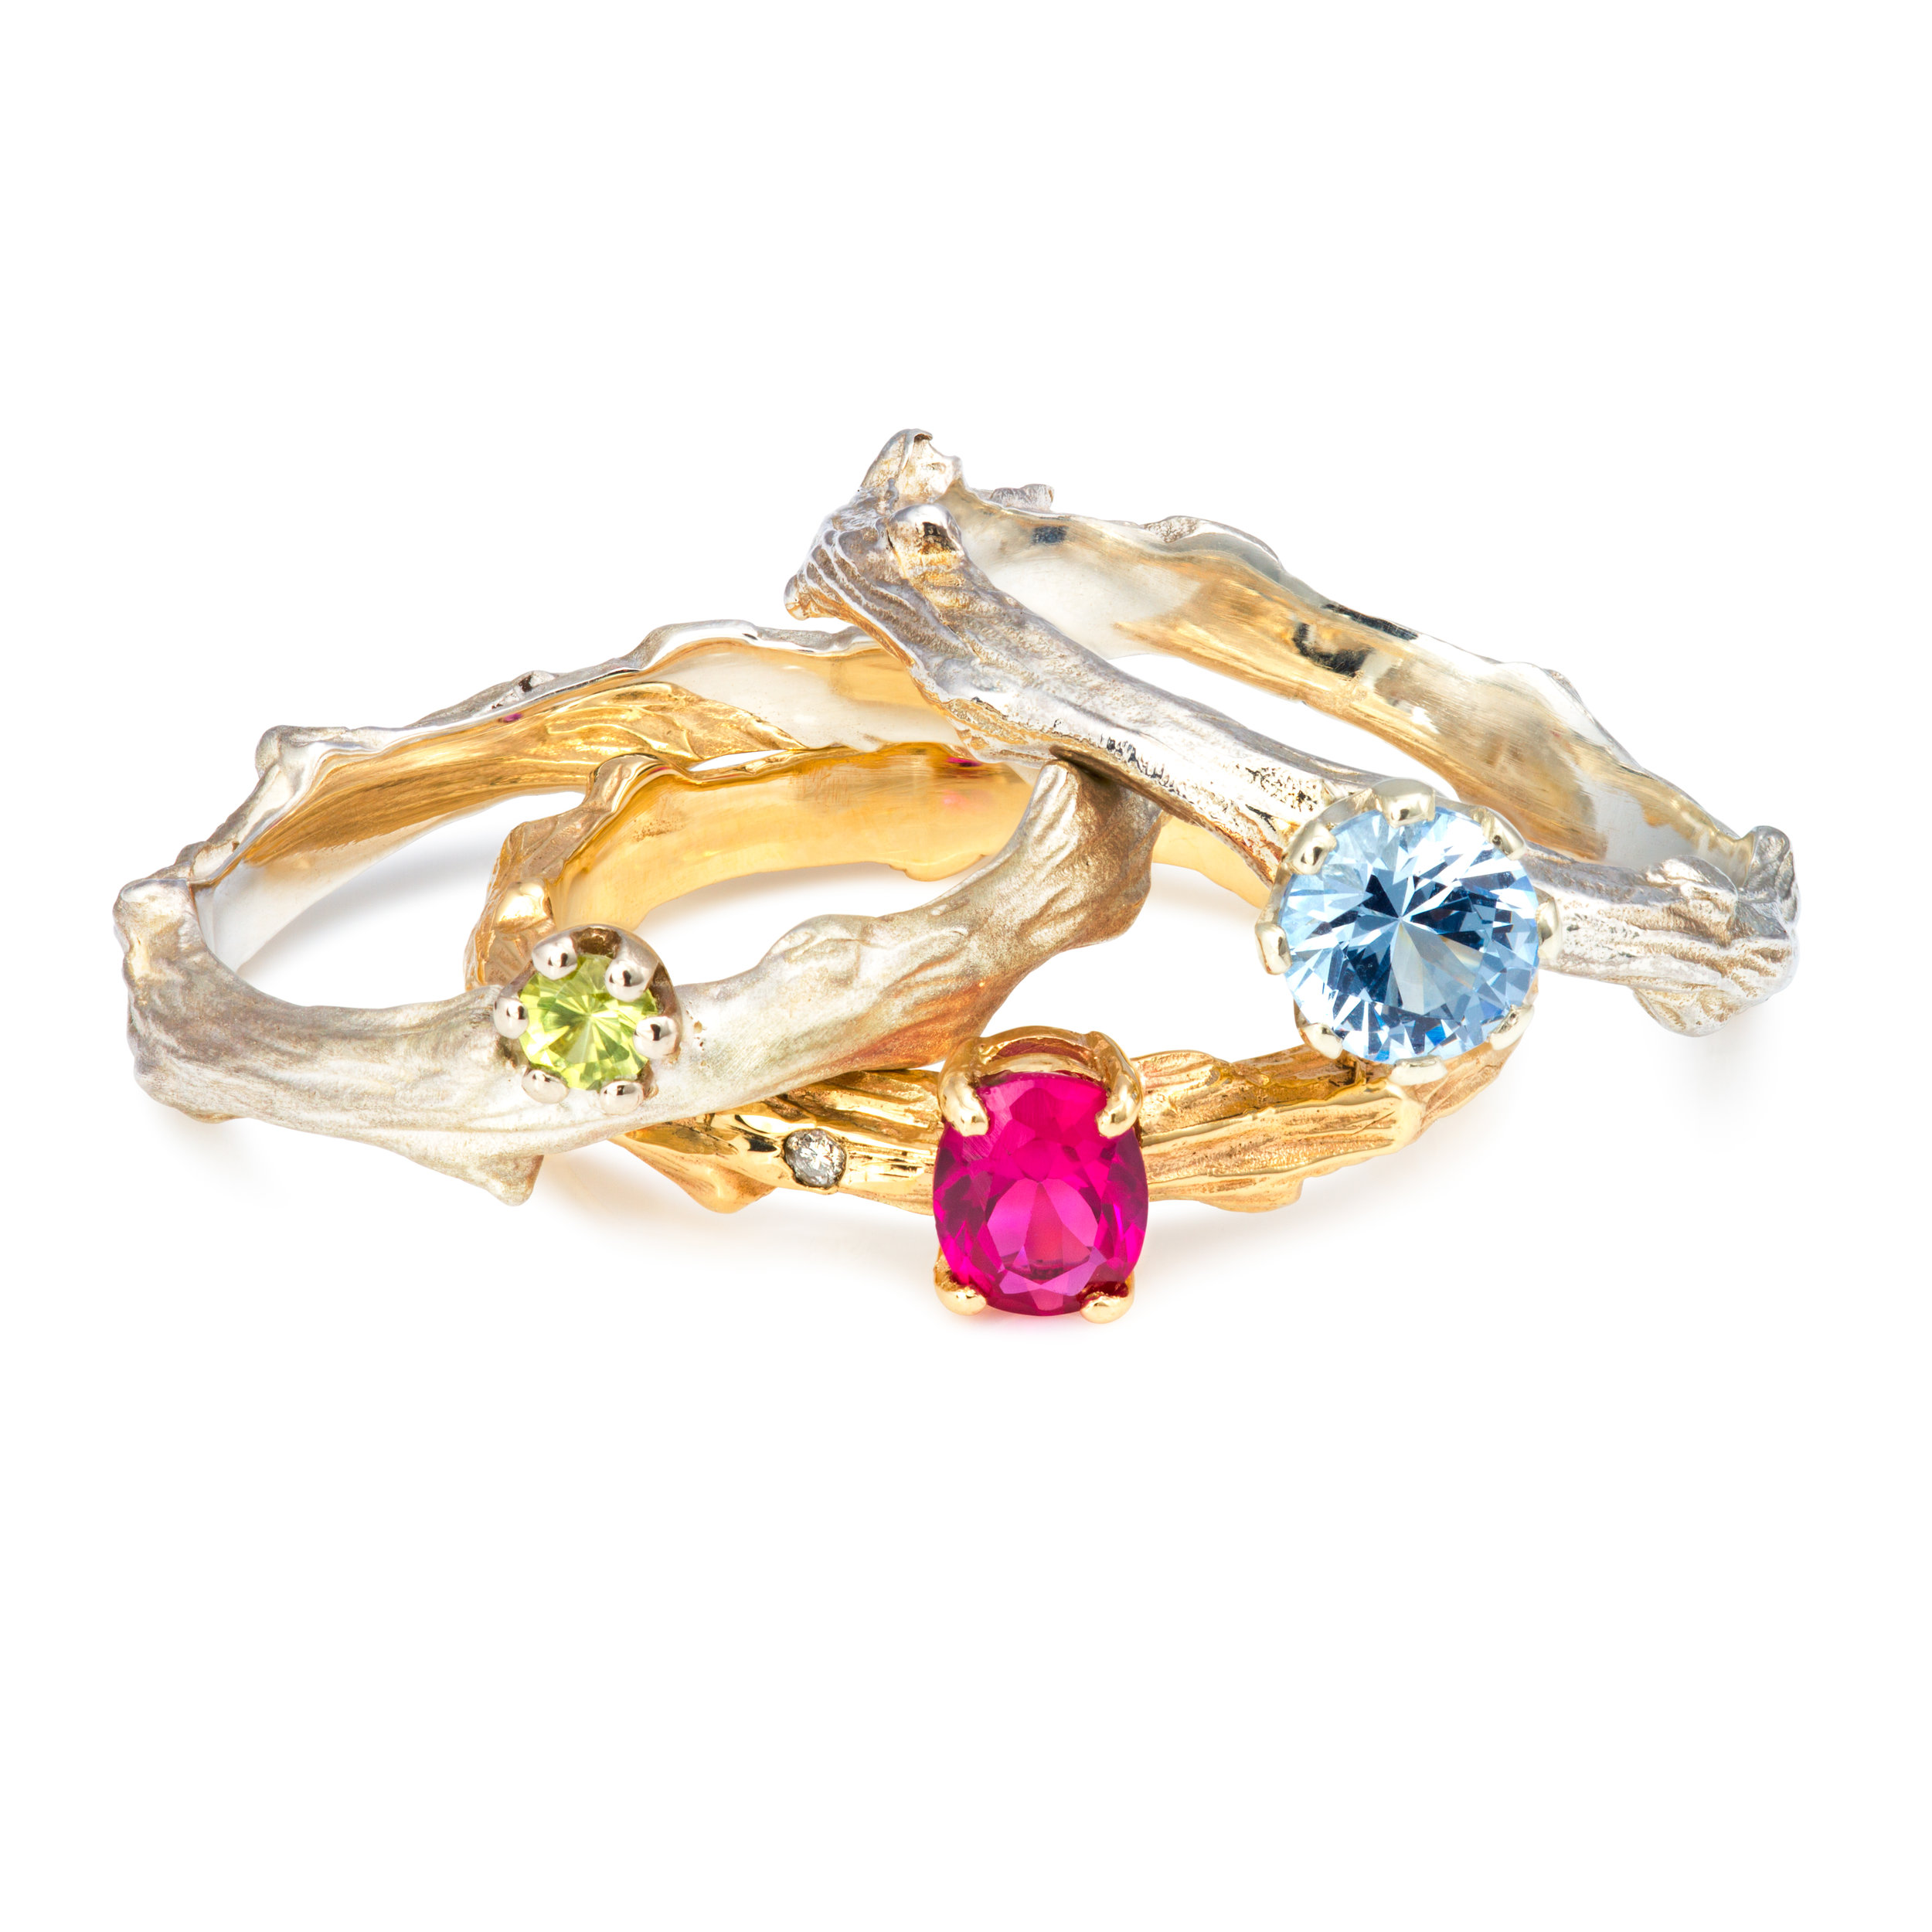 From left to right: Silver & peridot ring - £235 9ct yellow gold, lab-created ruby & diamond ring - £545 Silver & lab-created blue spinel ring - £270